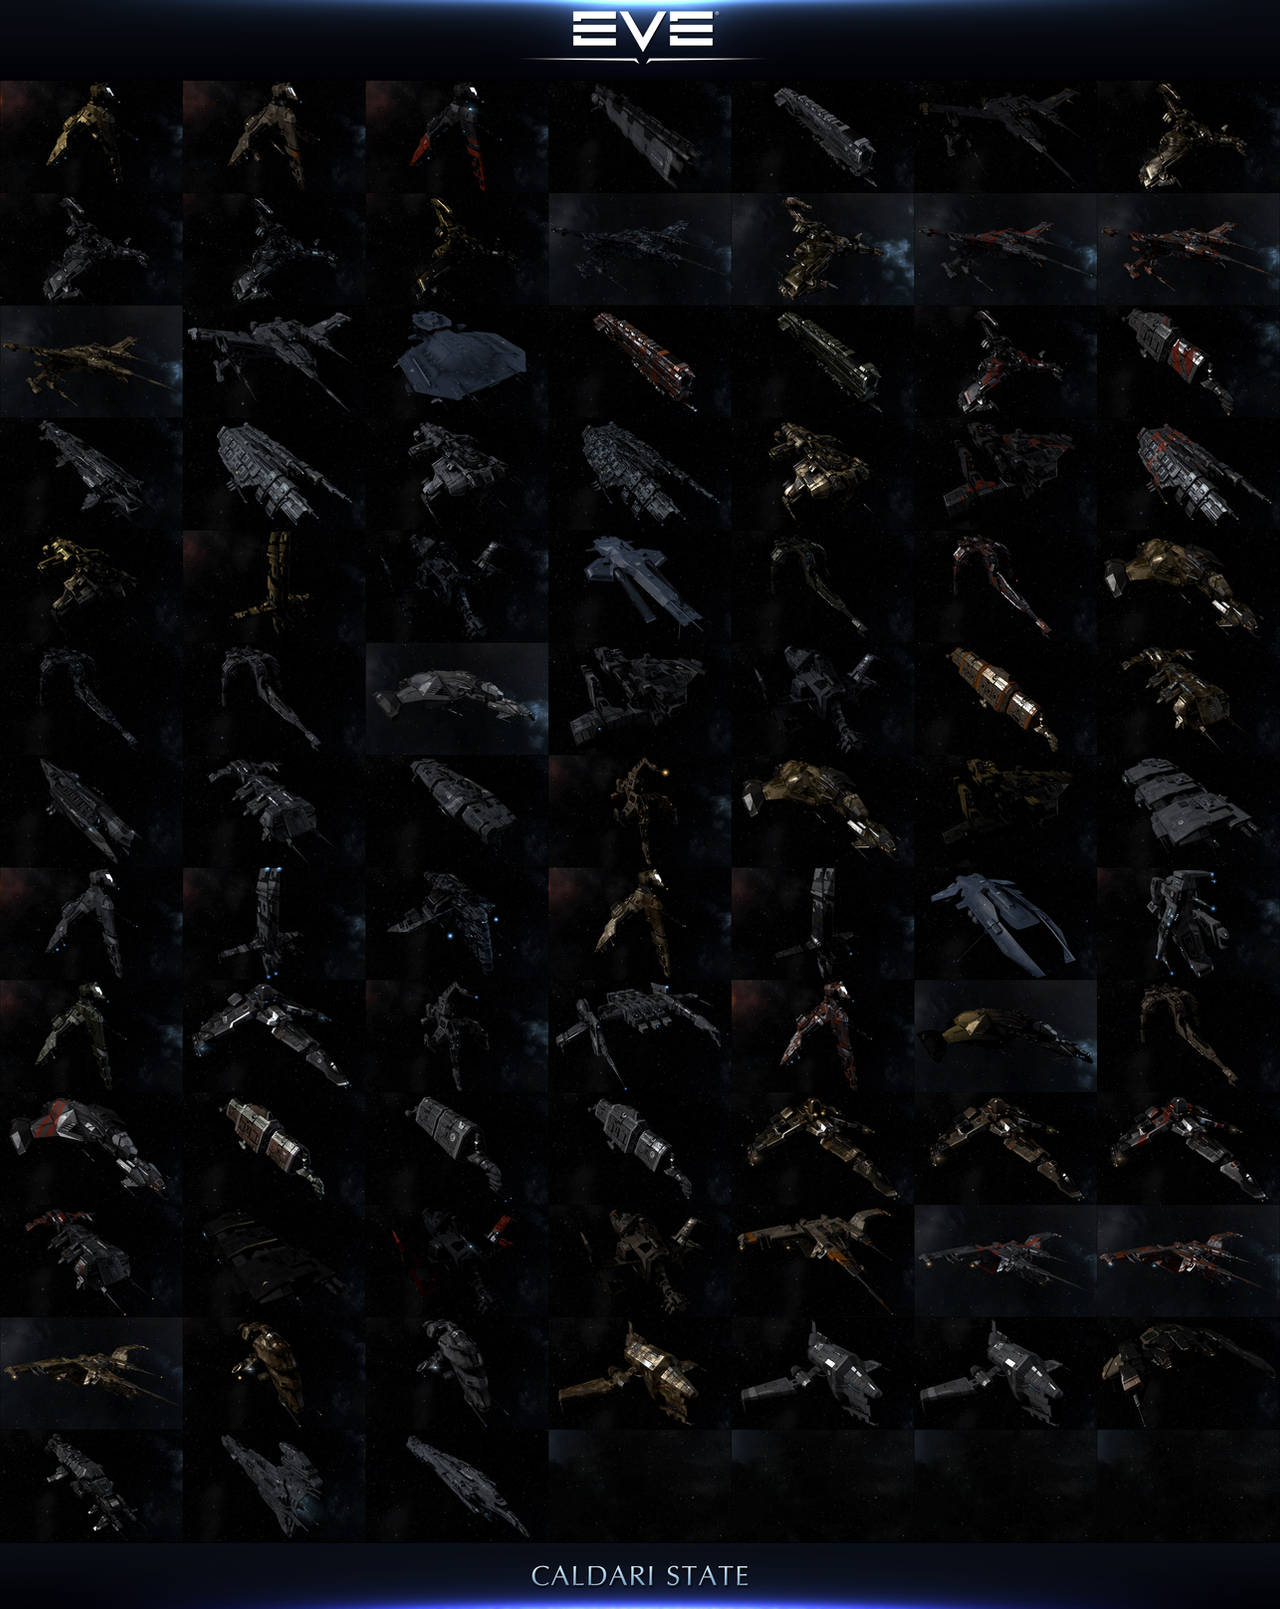 The Ships Of EVE Online 2014: Caldari State by AeonOfTime